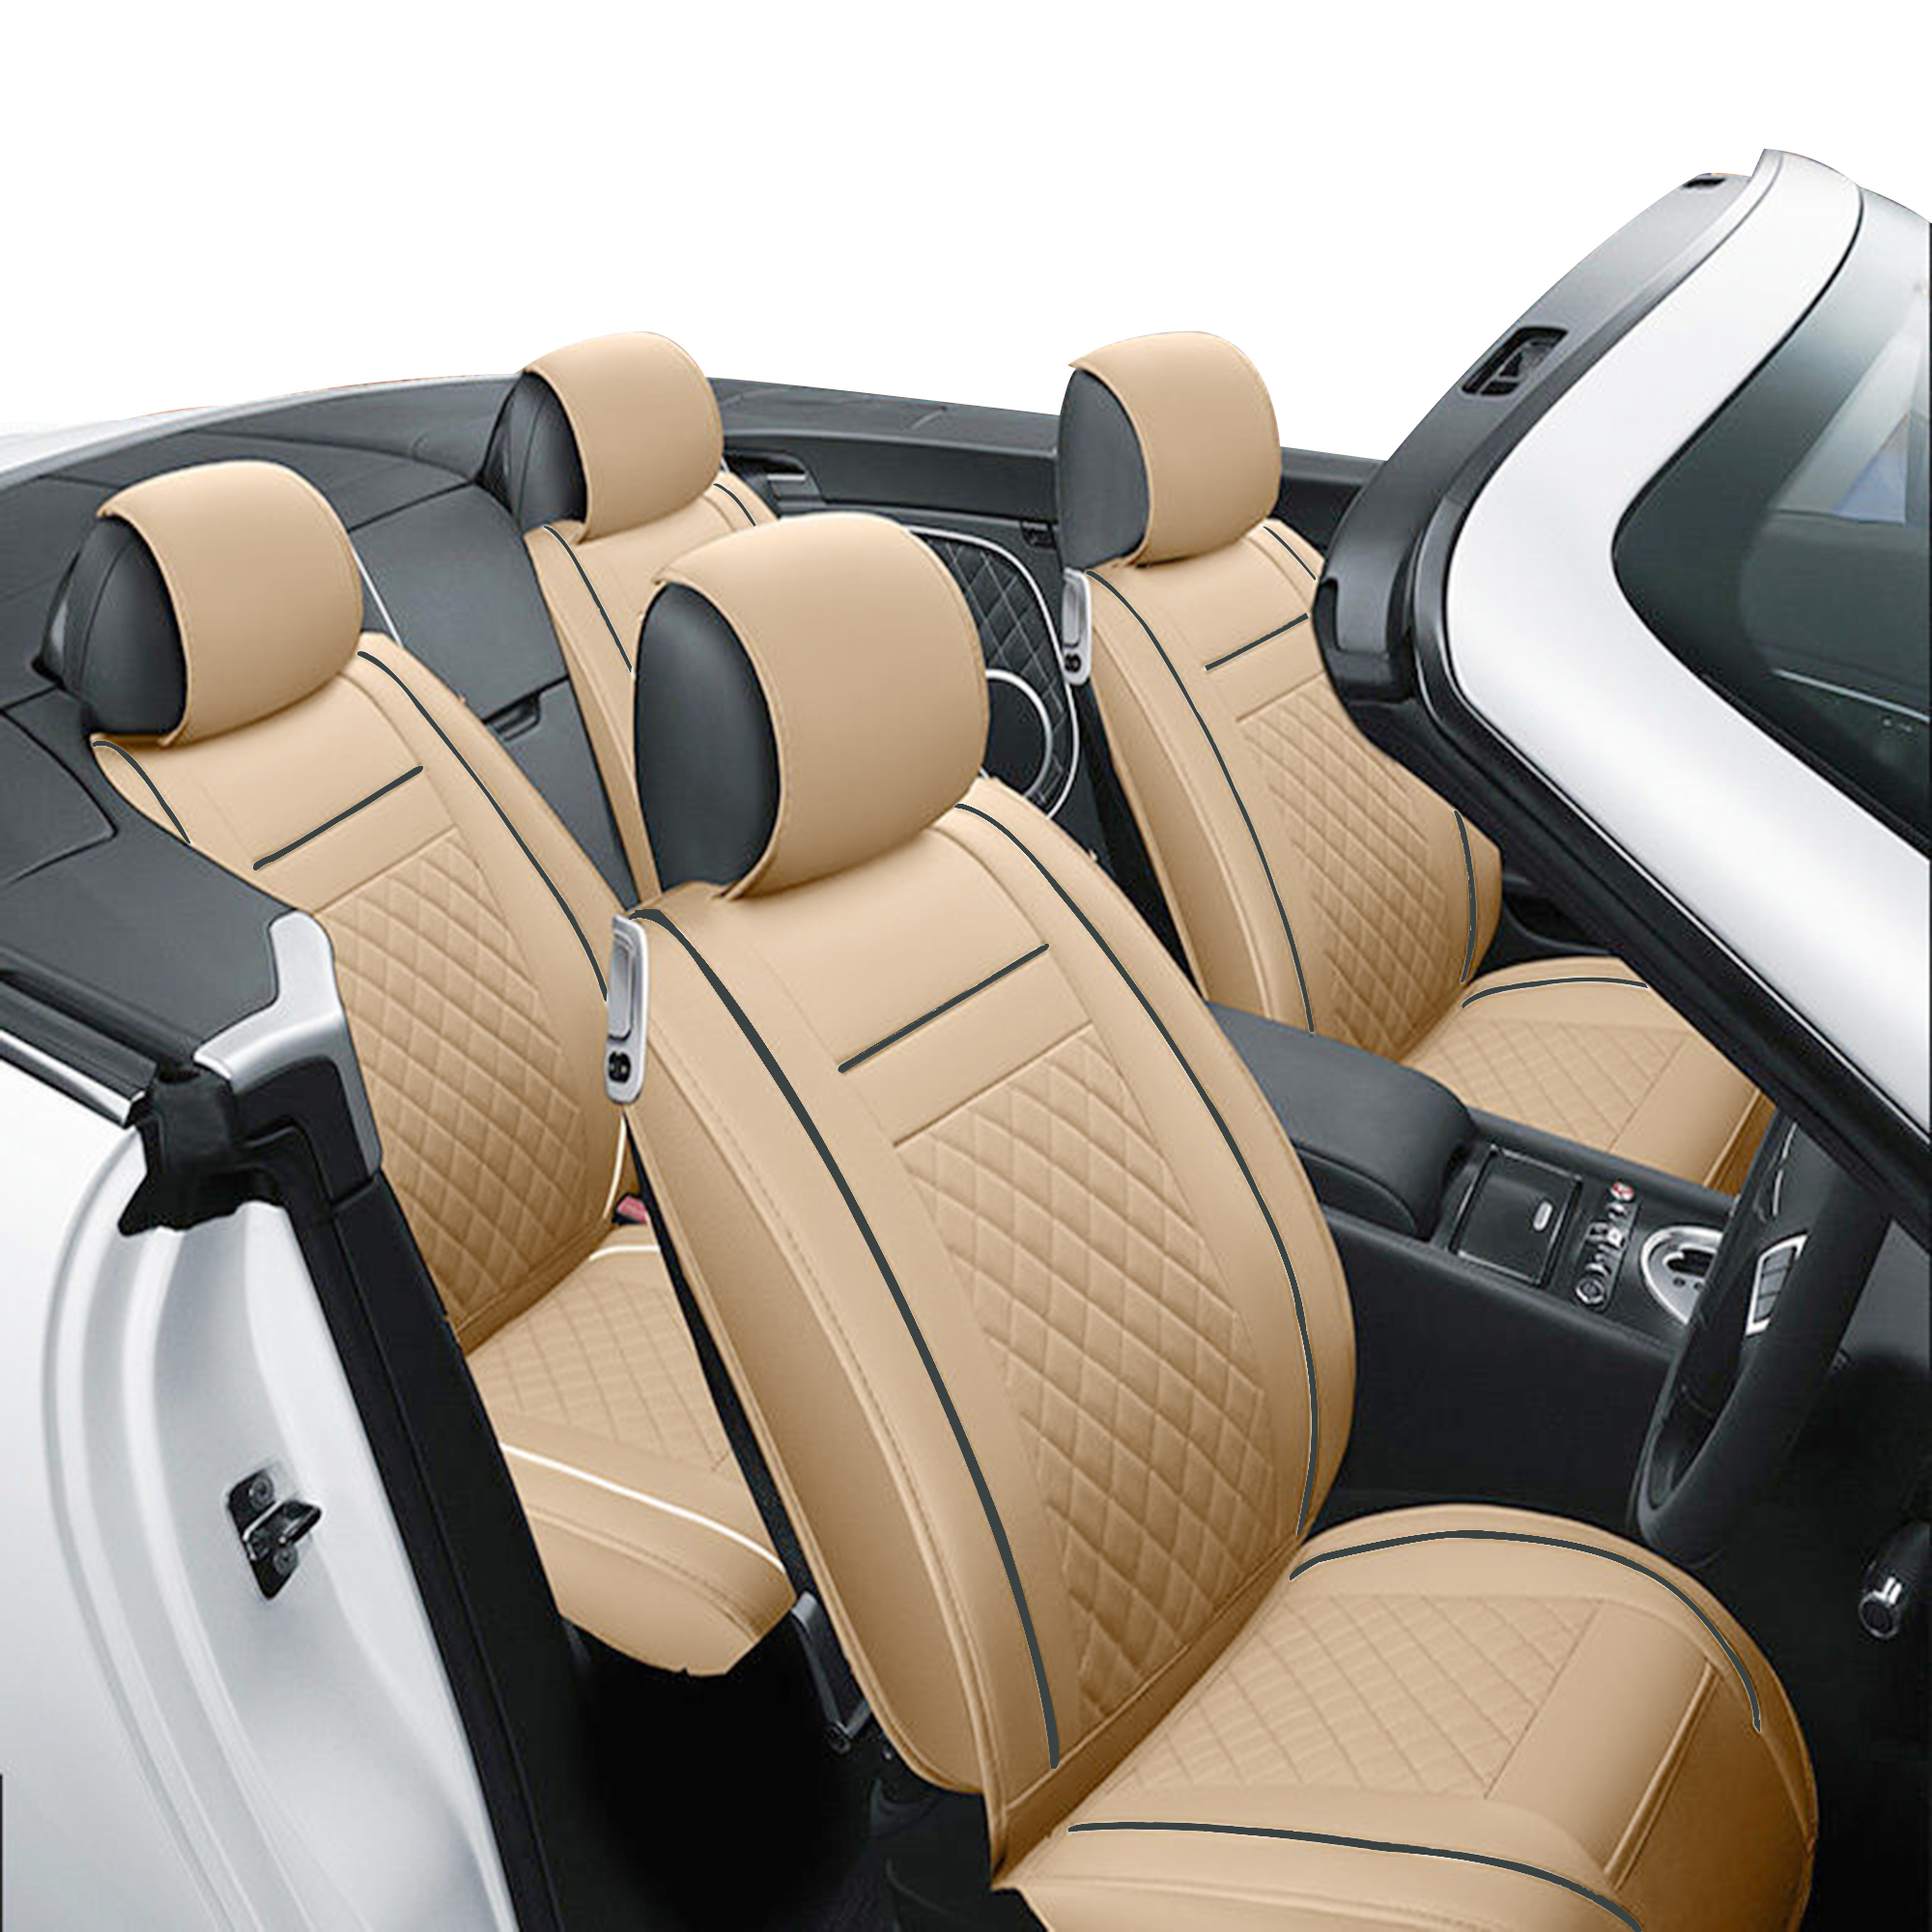 TINTON LIFE PU Leather Car Seat Cover Auto Car Seat Cushion Chair Mat Protector Useful, Beige